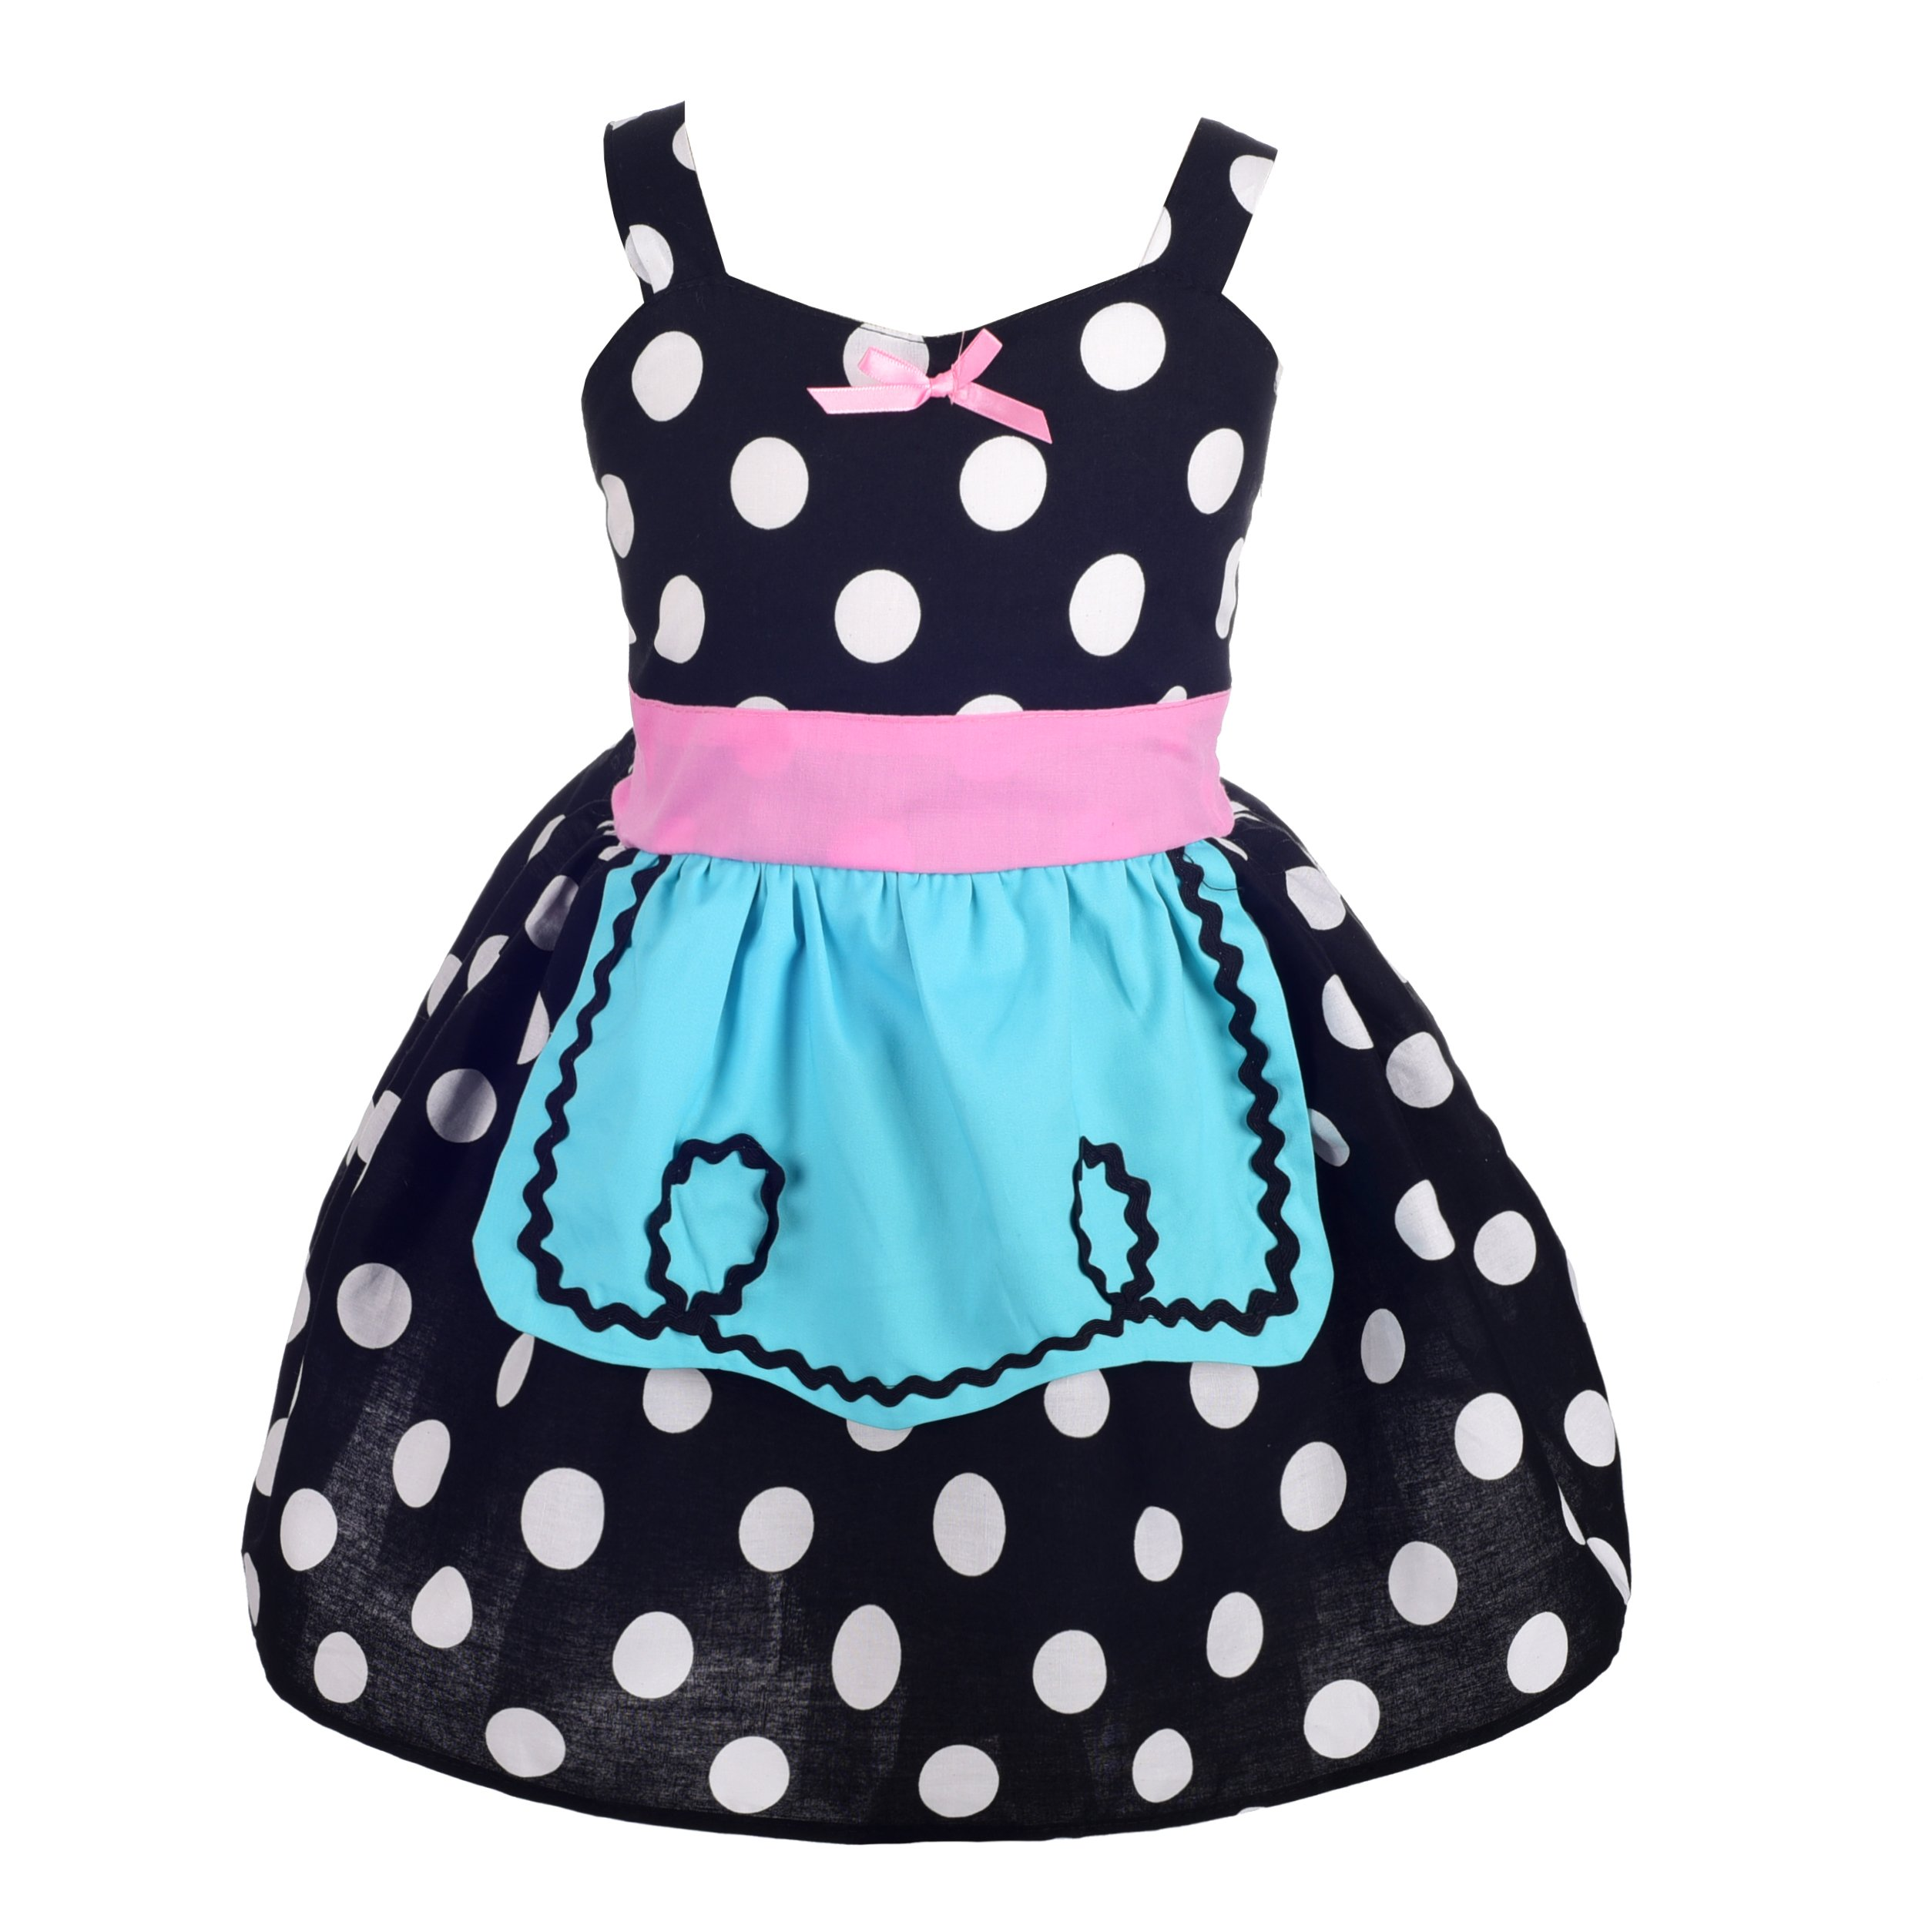 Dressy Daisy Polka Dot Dress with Apron Summer Dresses for Toddler Size 4T